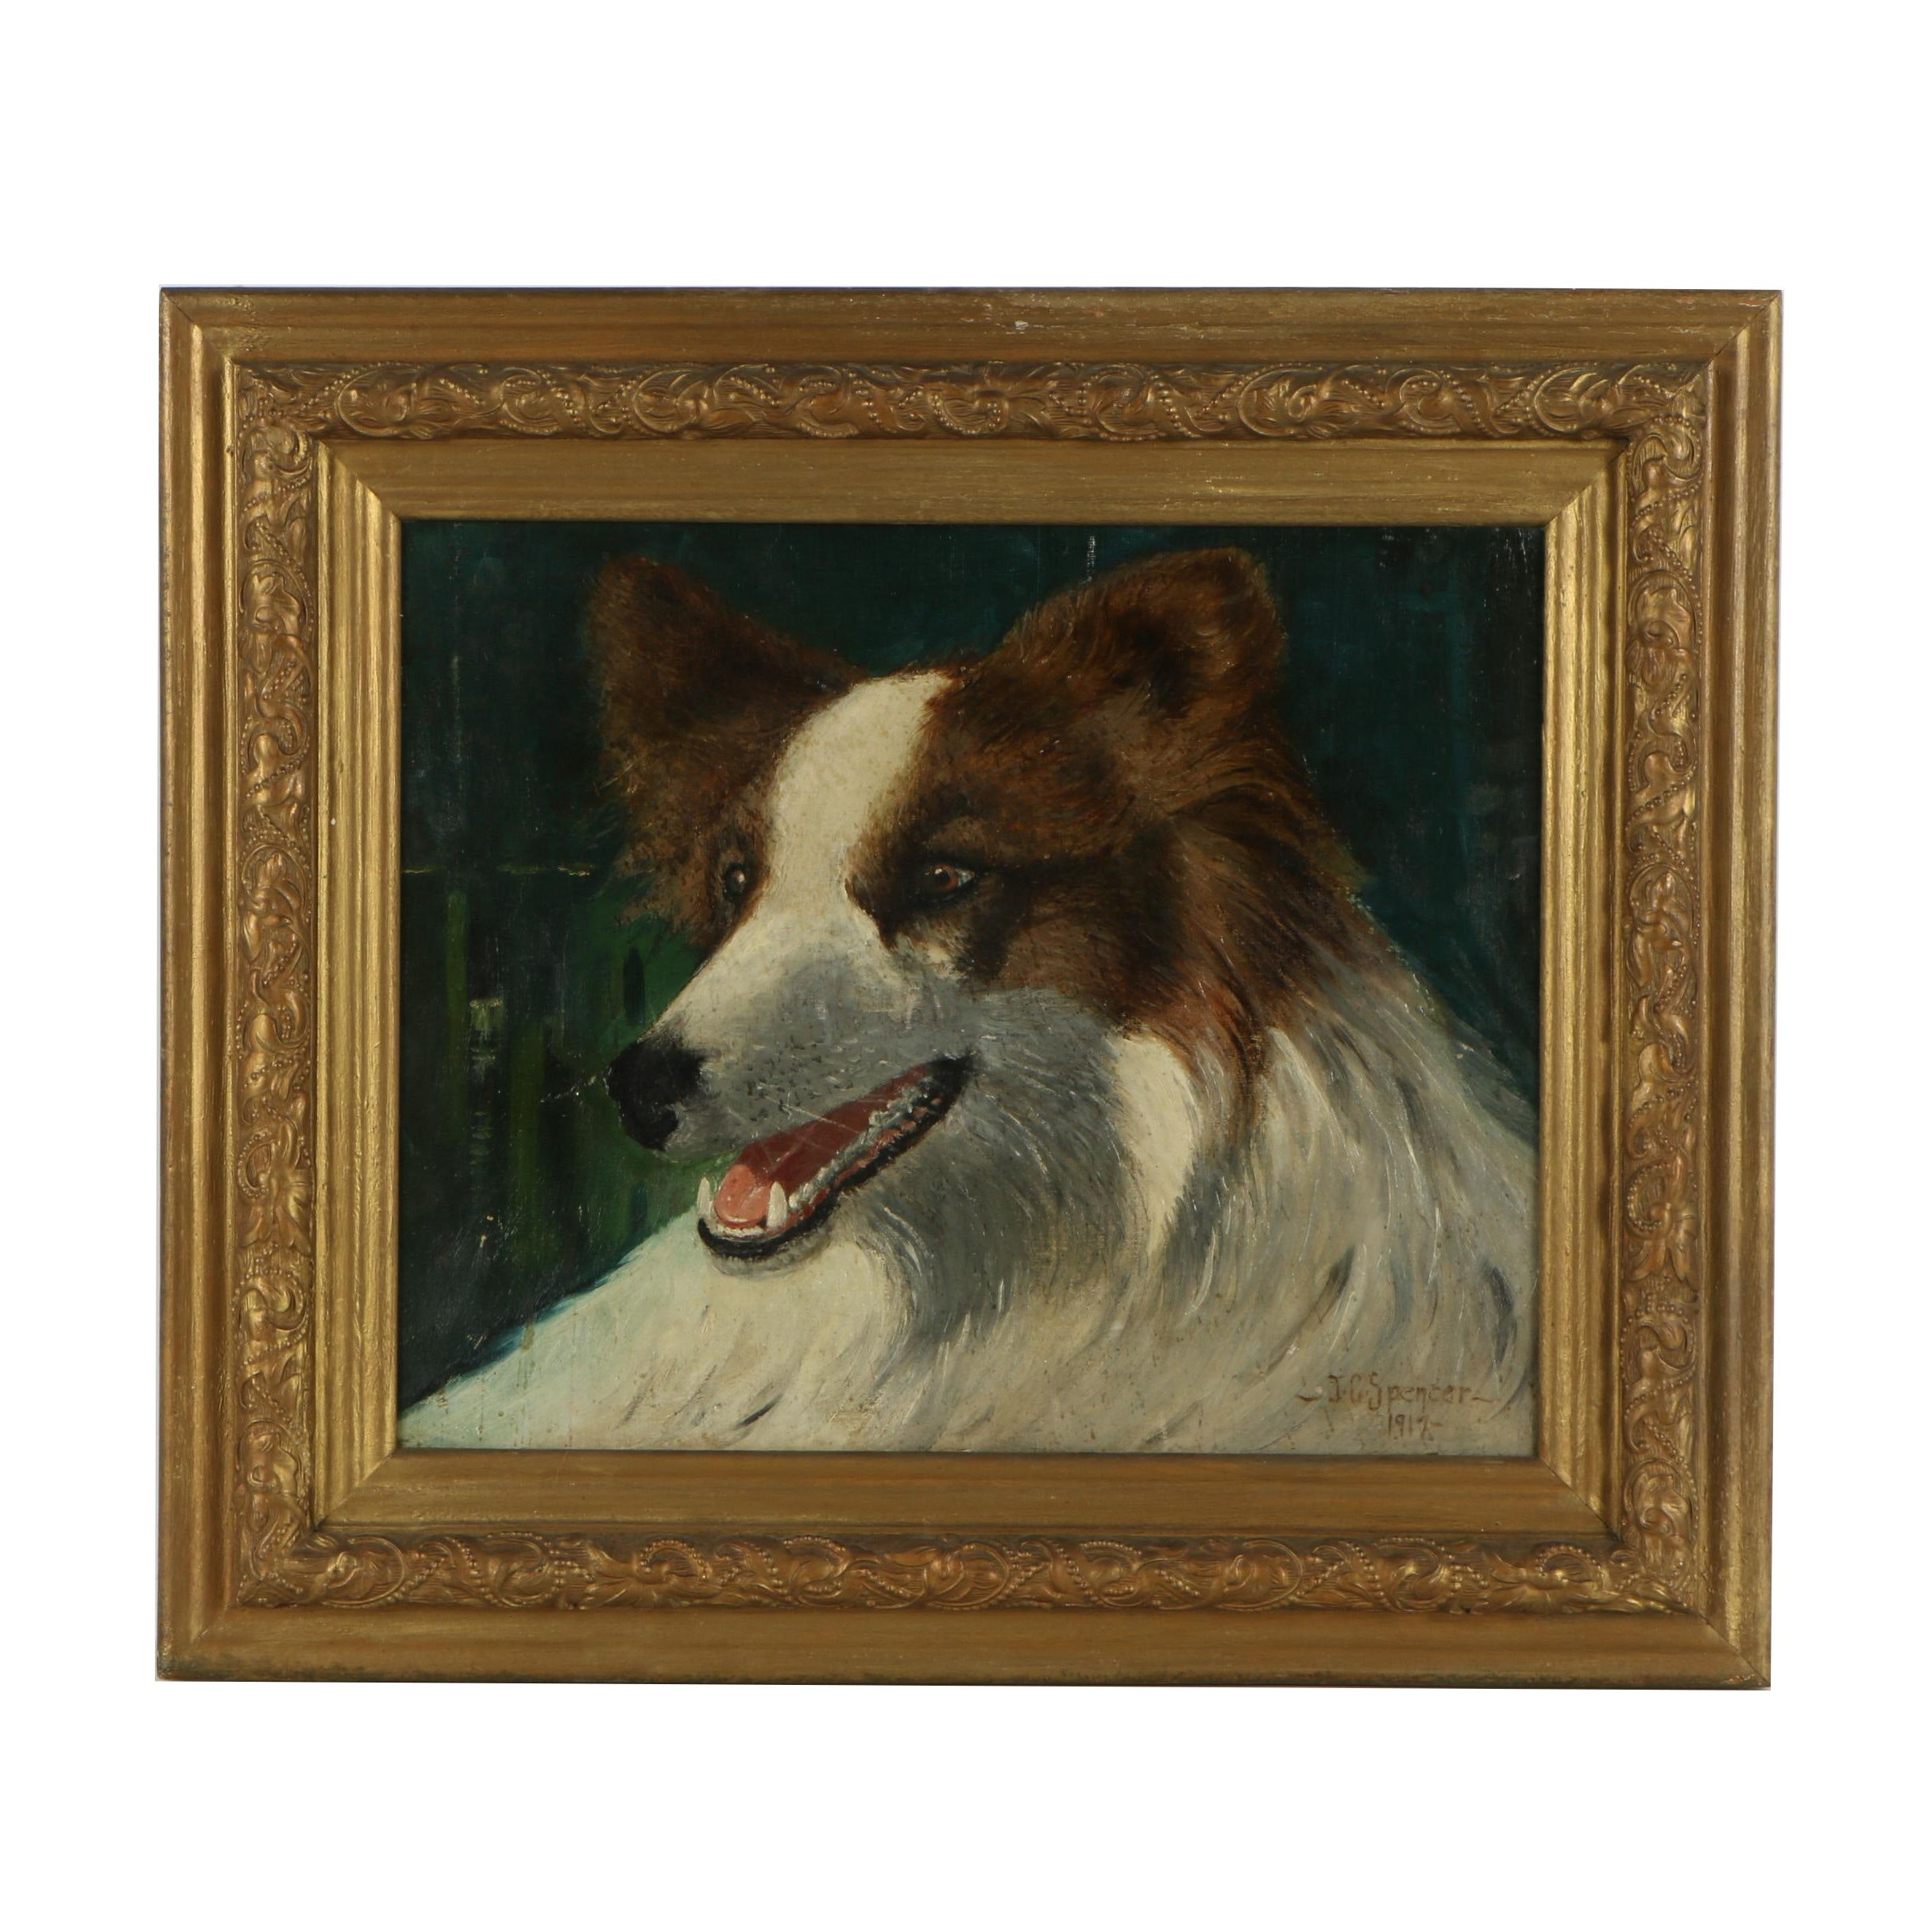 J. C. Spencer Oil Painting of Dog